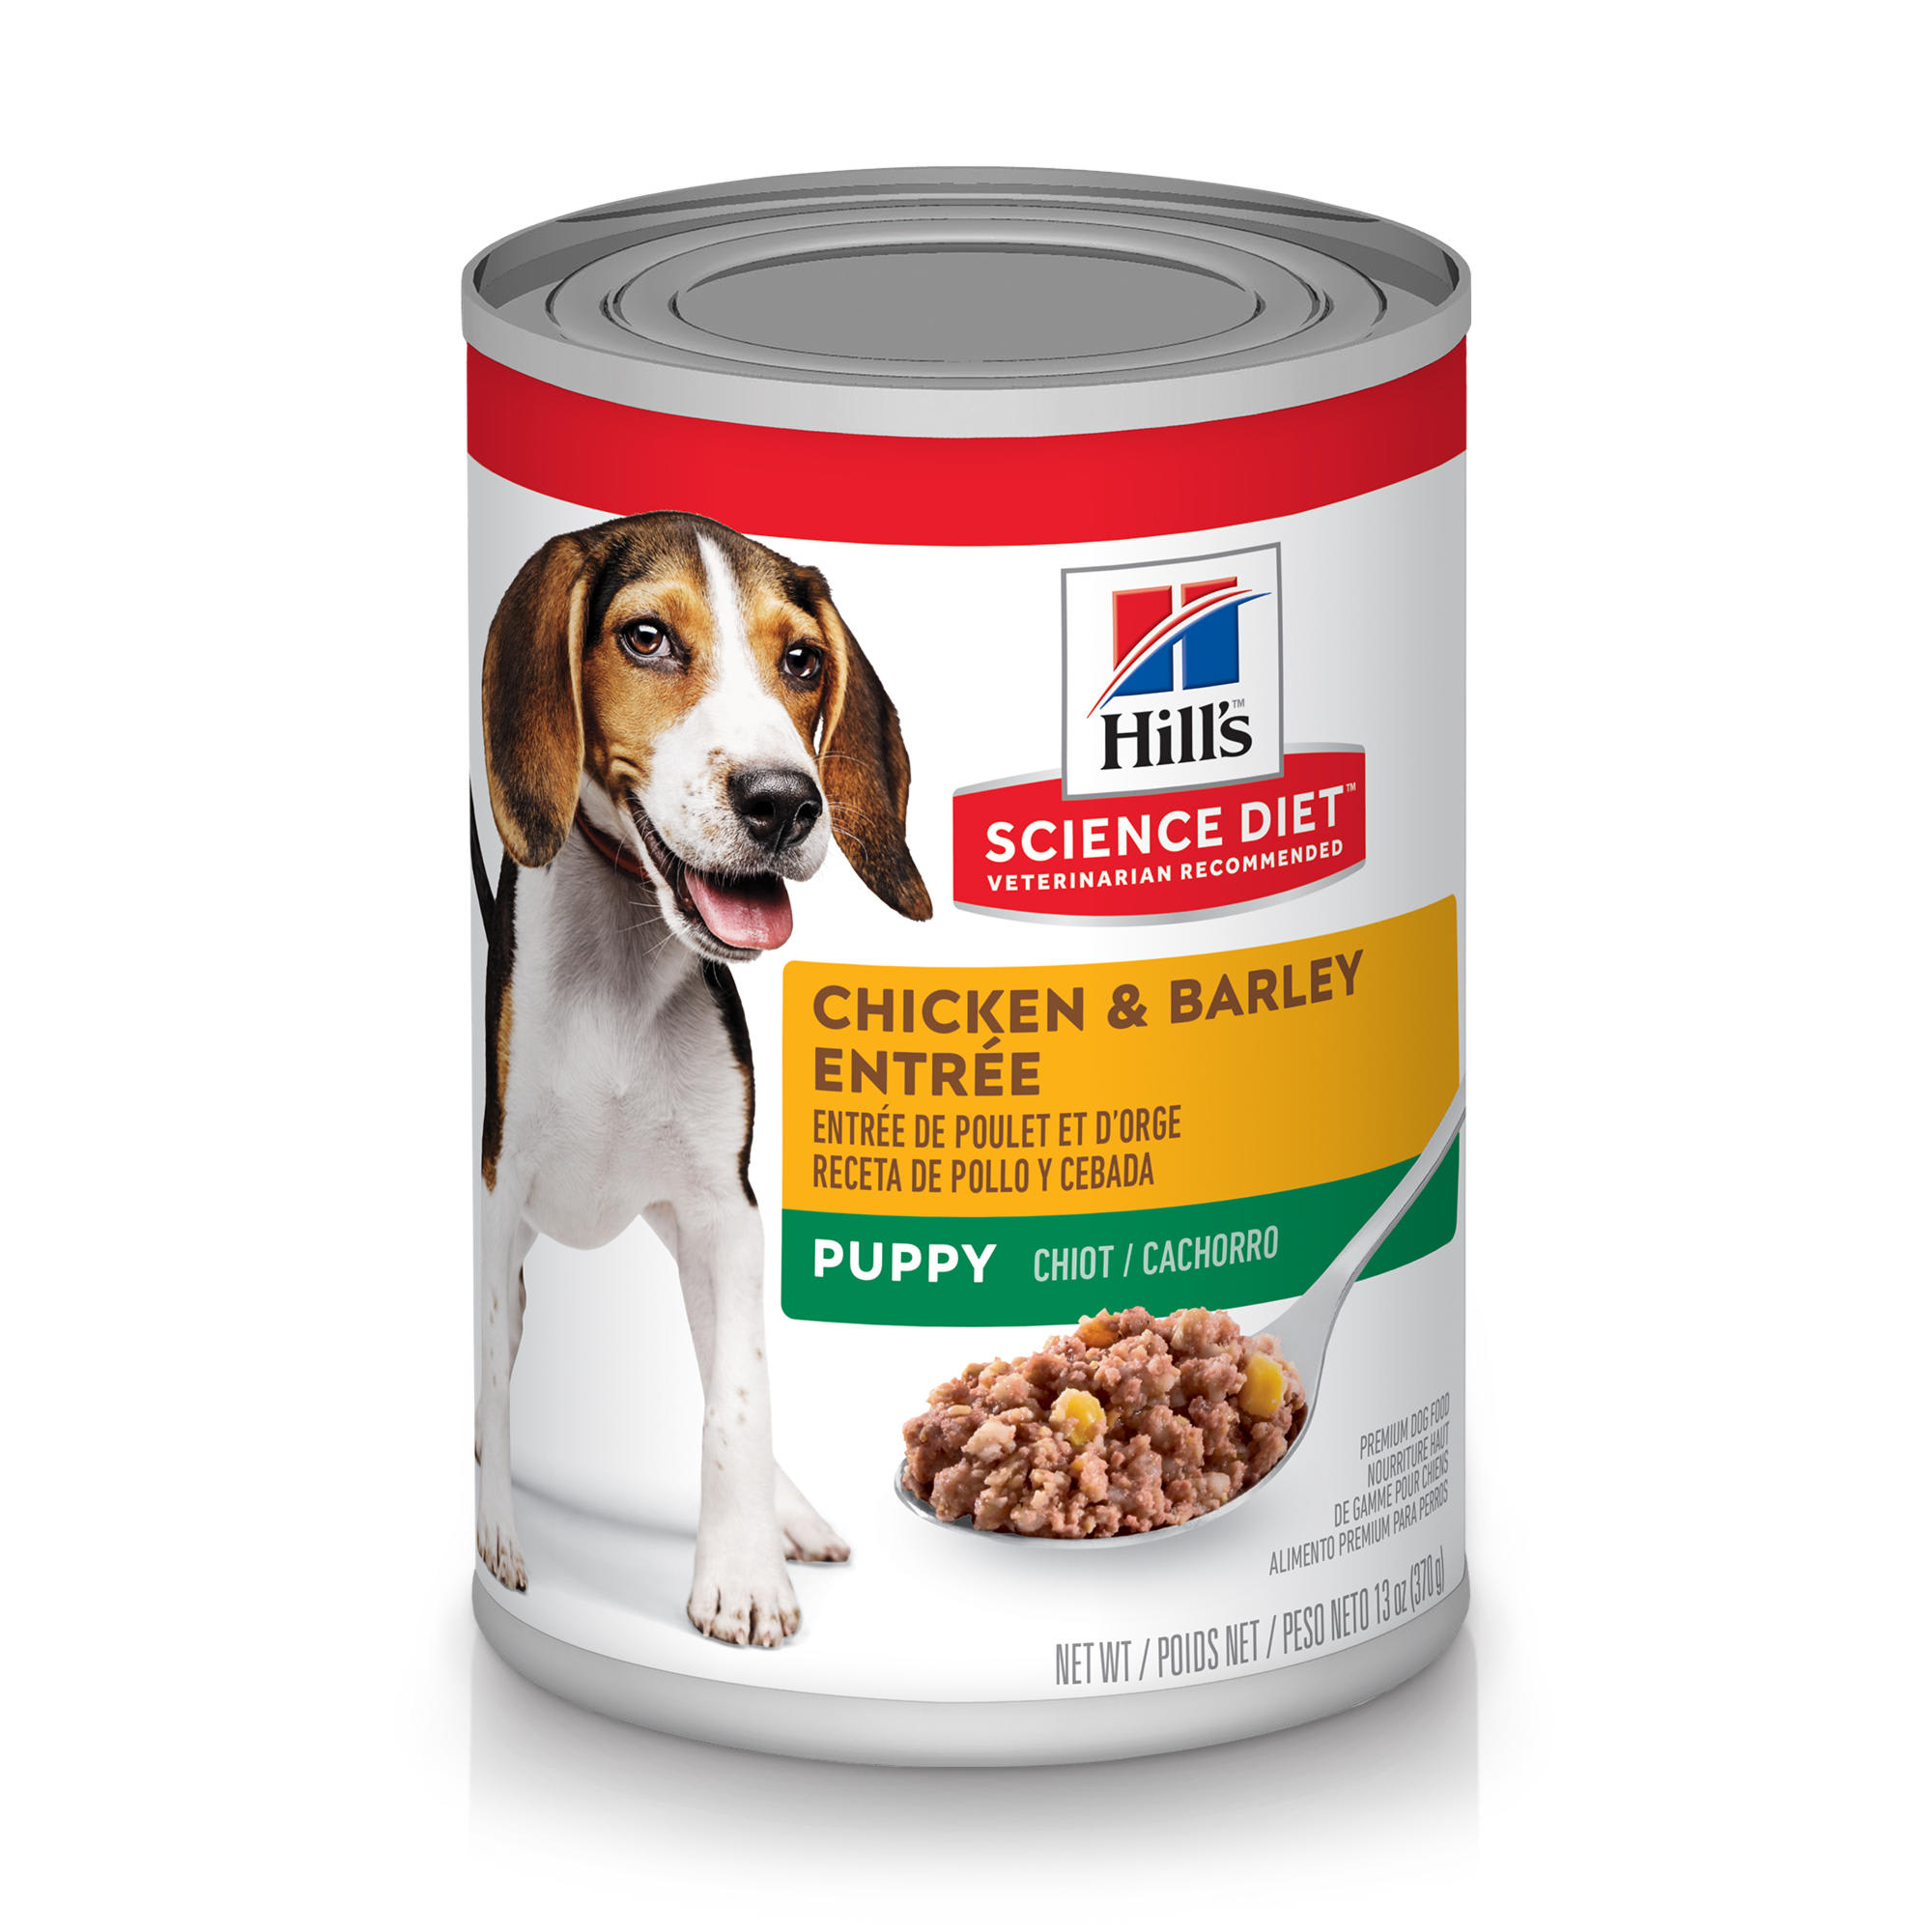 Hill's Science Diet Puppy Chicken & Barley Entree Canned Dog Food, 13 oz., Case of 12 -  7036